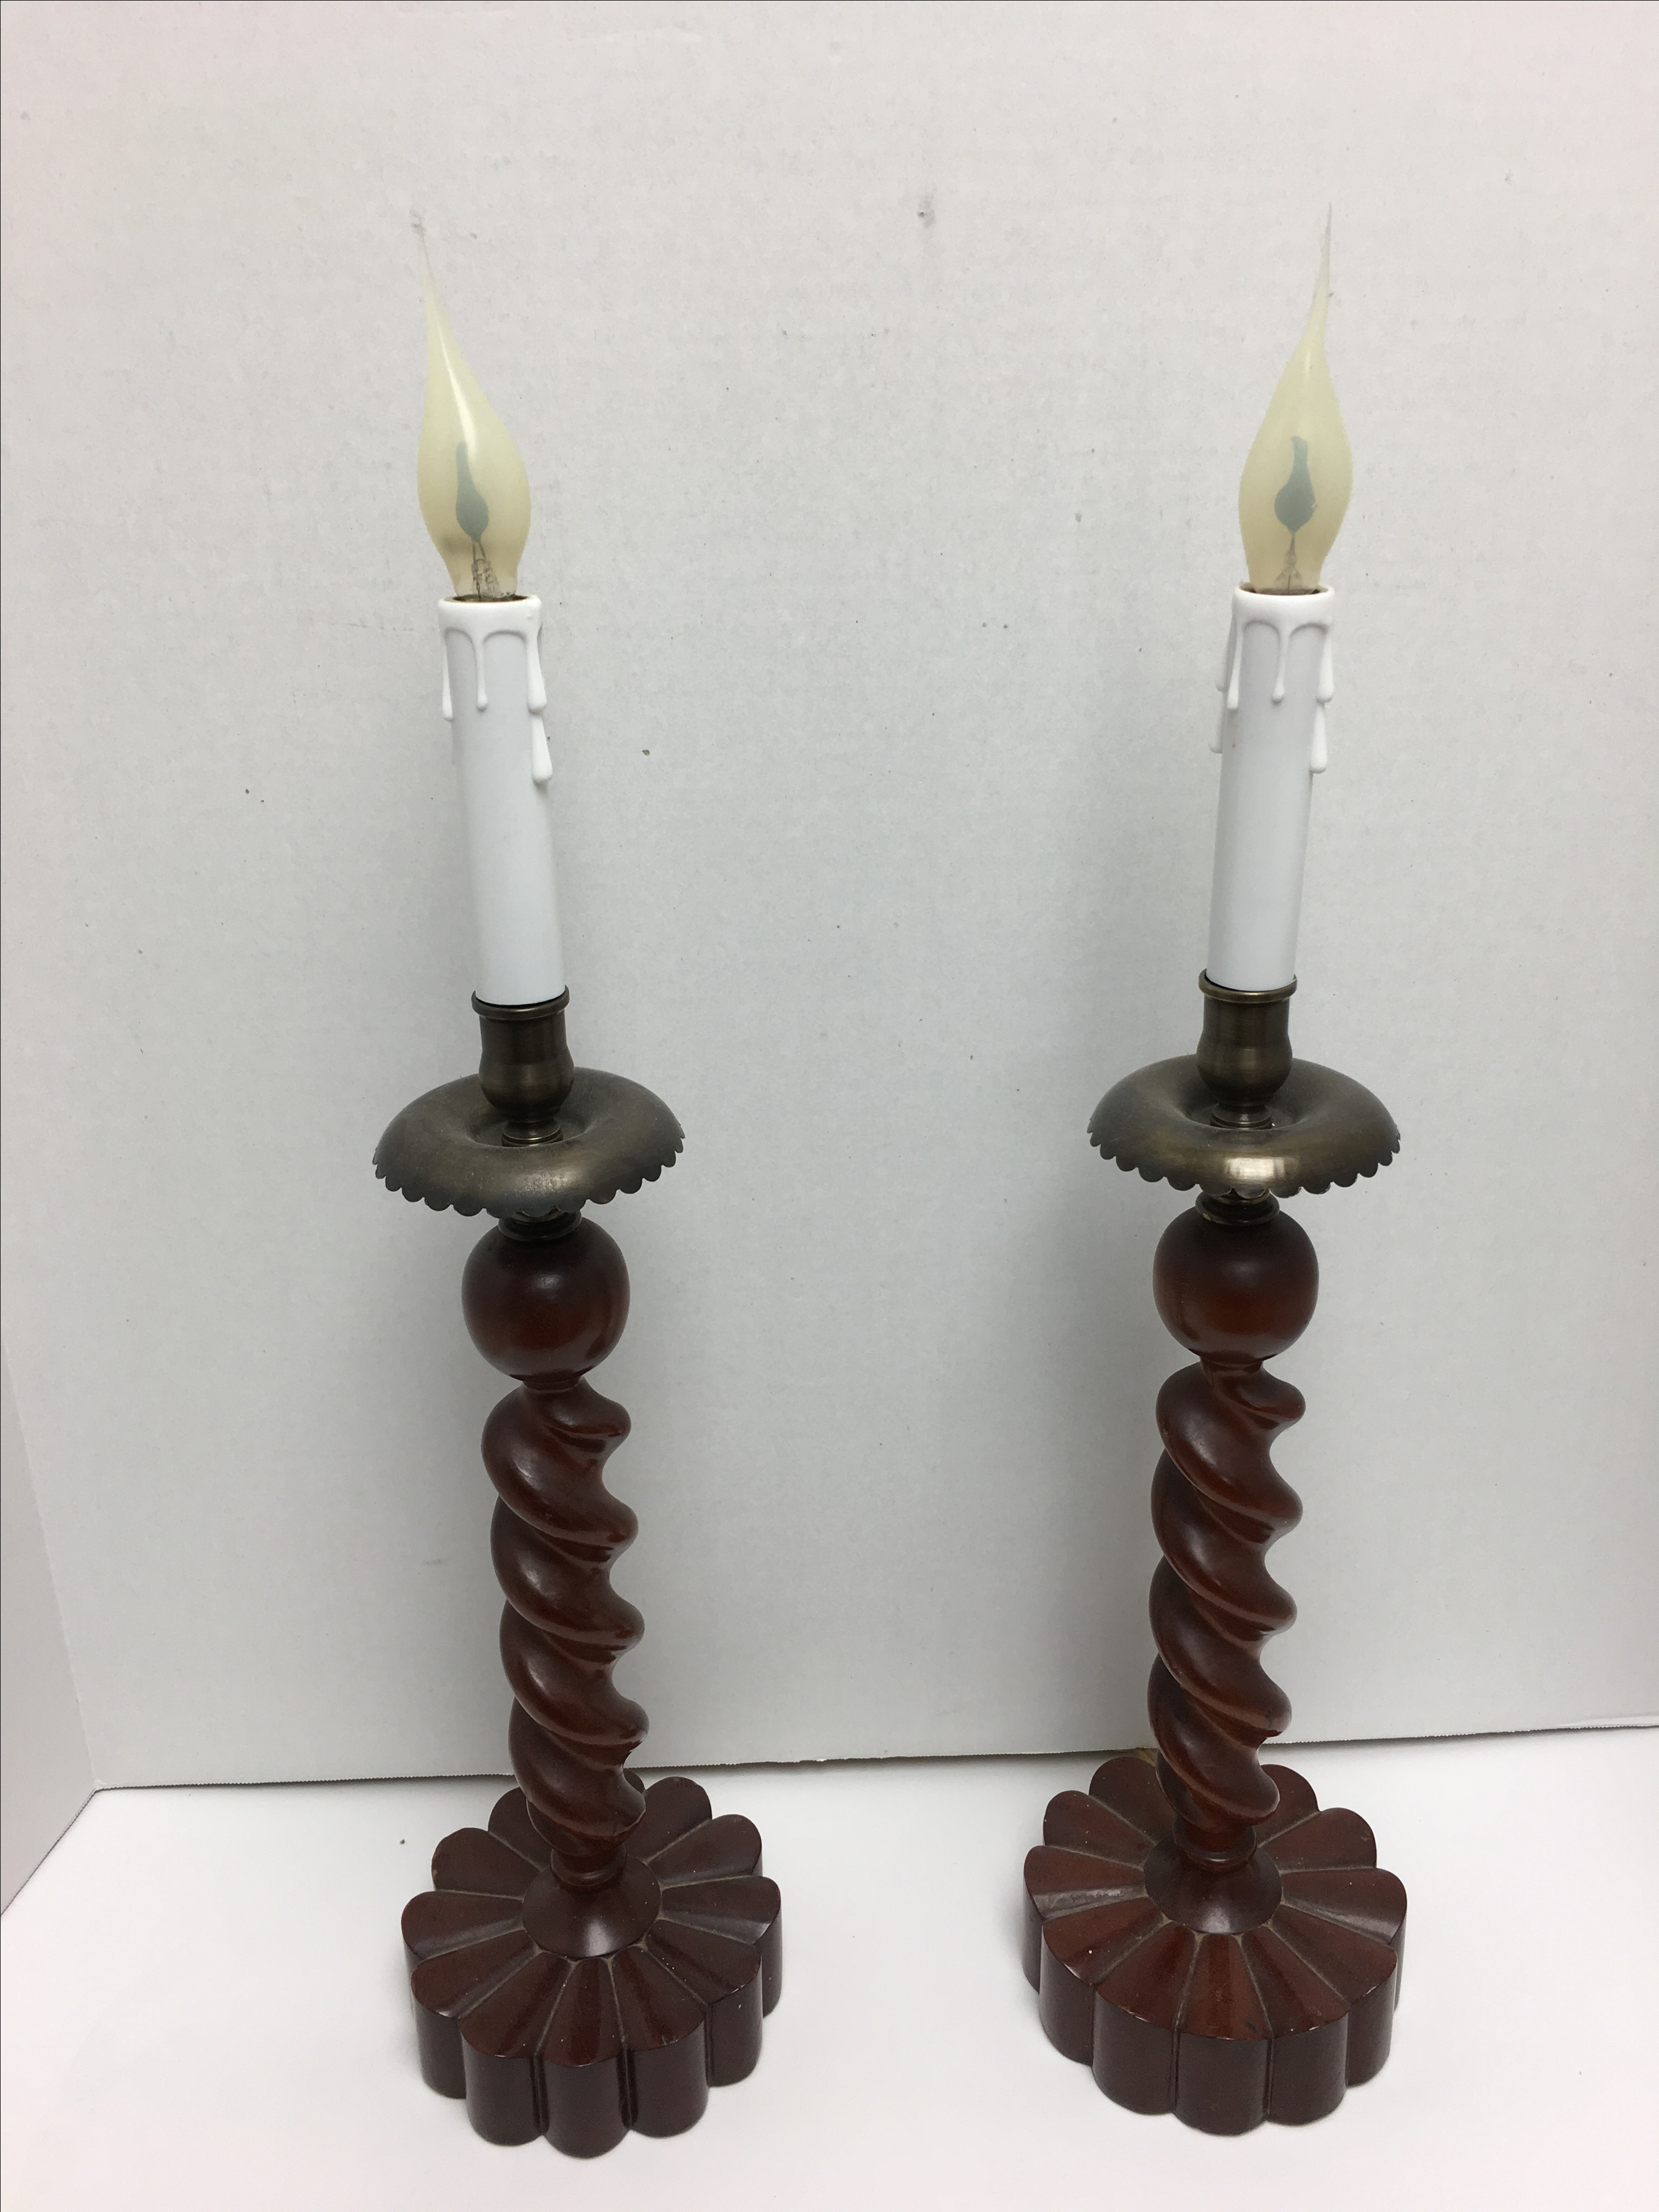 Carved Wood Brass Barley Twist Table Lamps - Pair : Chairish